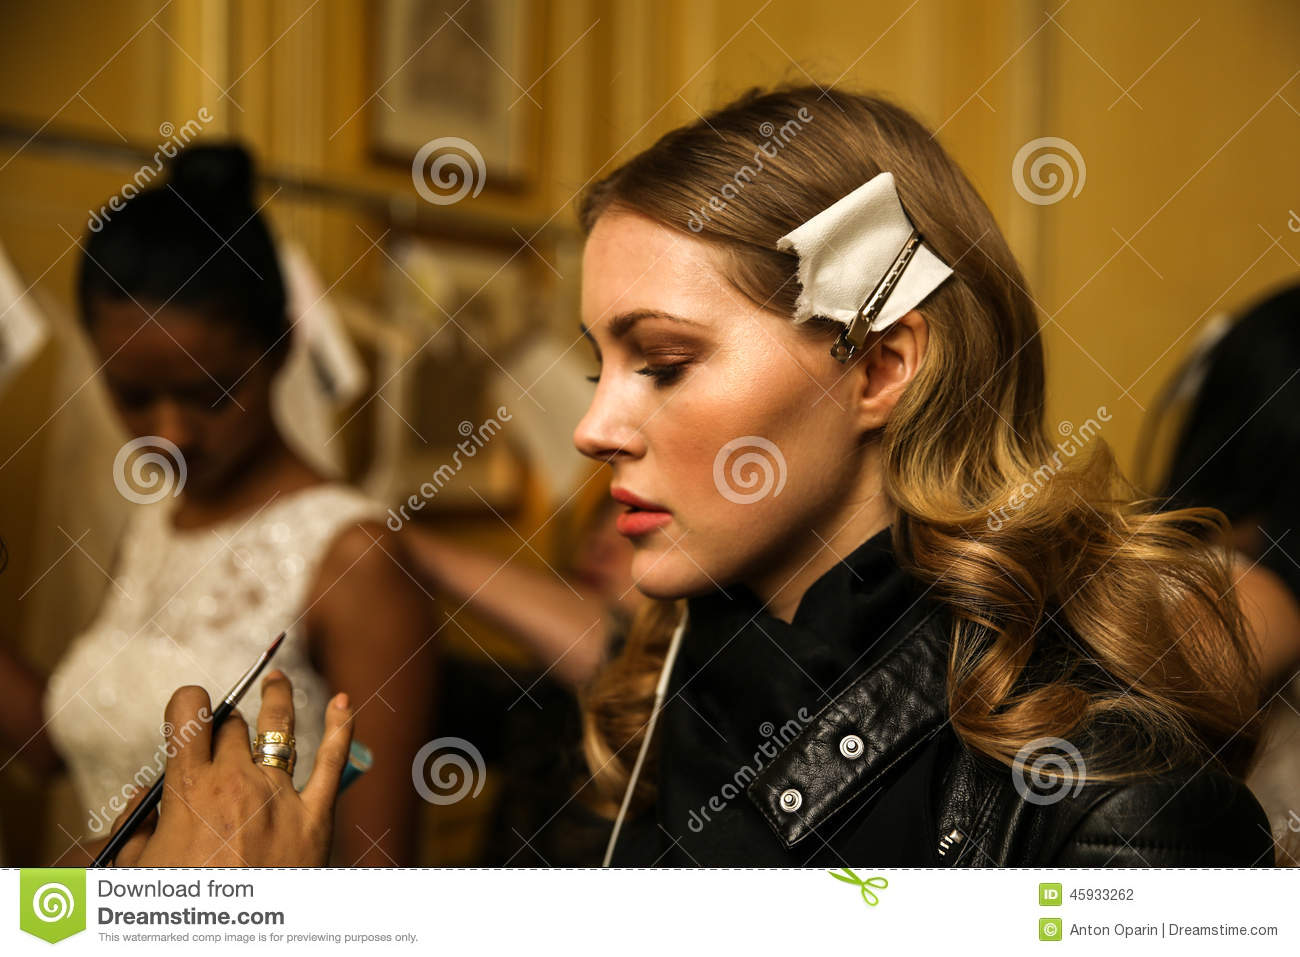 NEW YORK, NY - OCTOBER 09: A model getting ready backstage during Oleg Cassini Fall 2015 Bridal collection